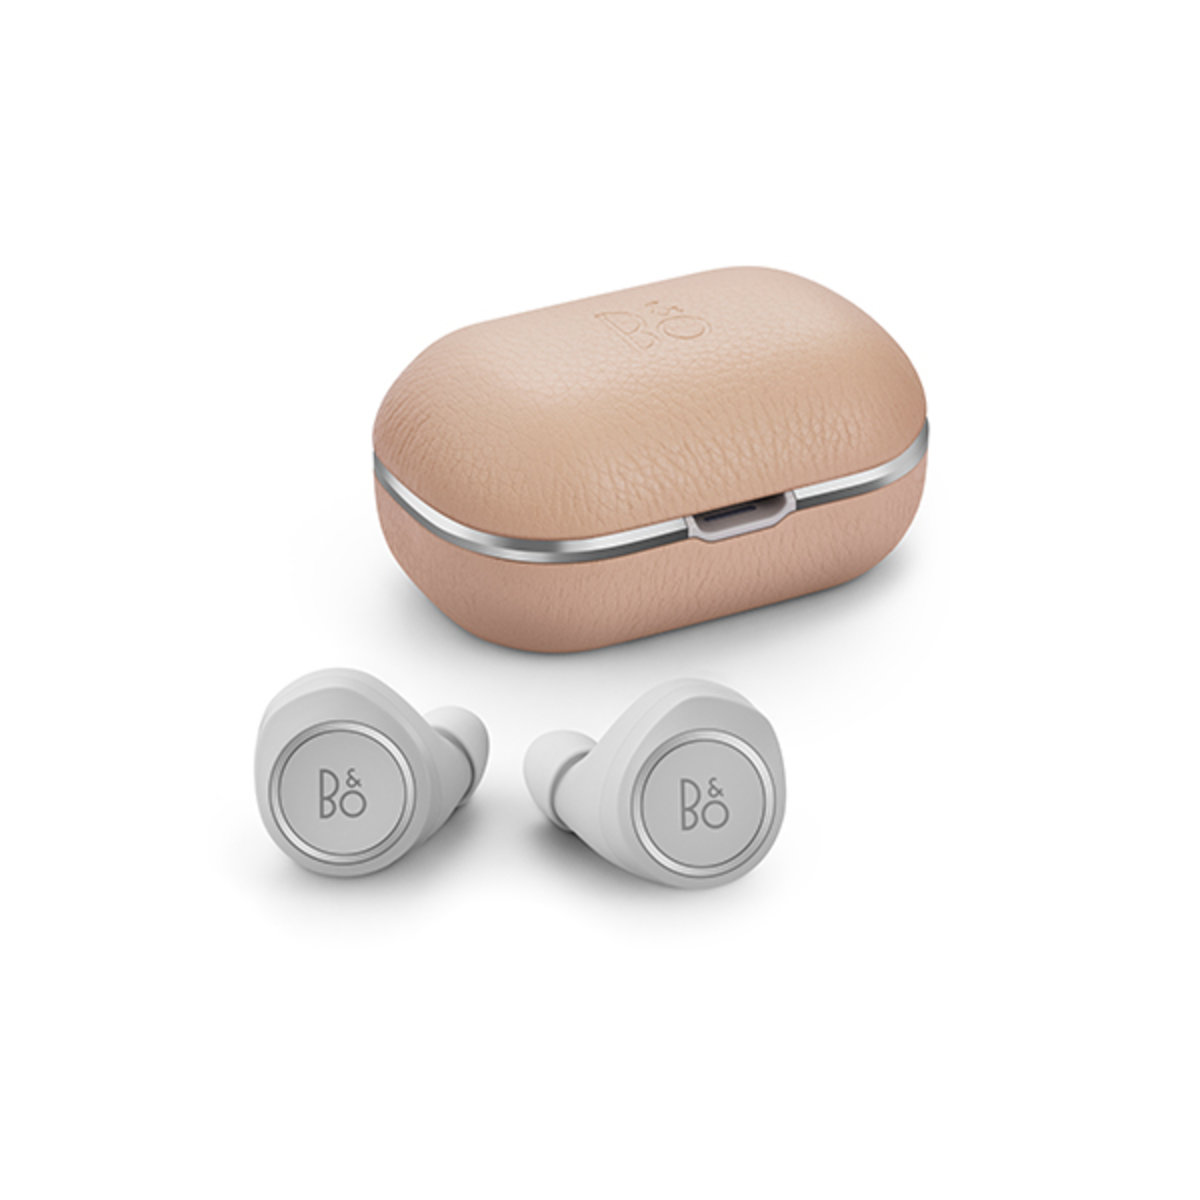 E8 2.0 True Wireless Earphones[Natural]